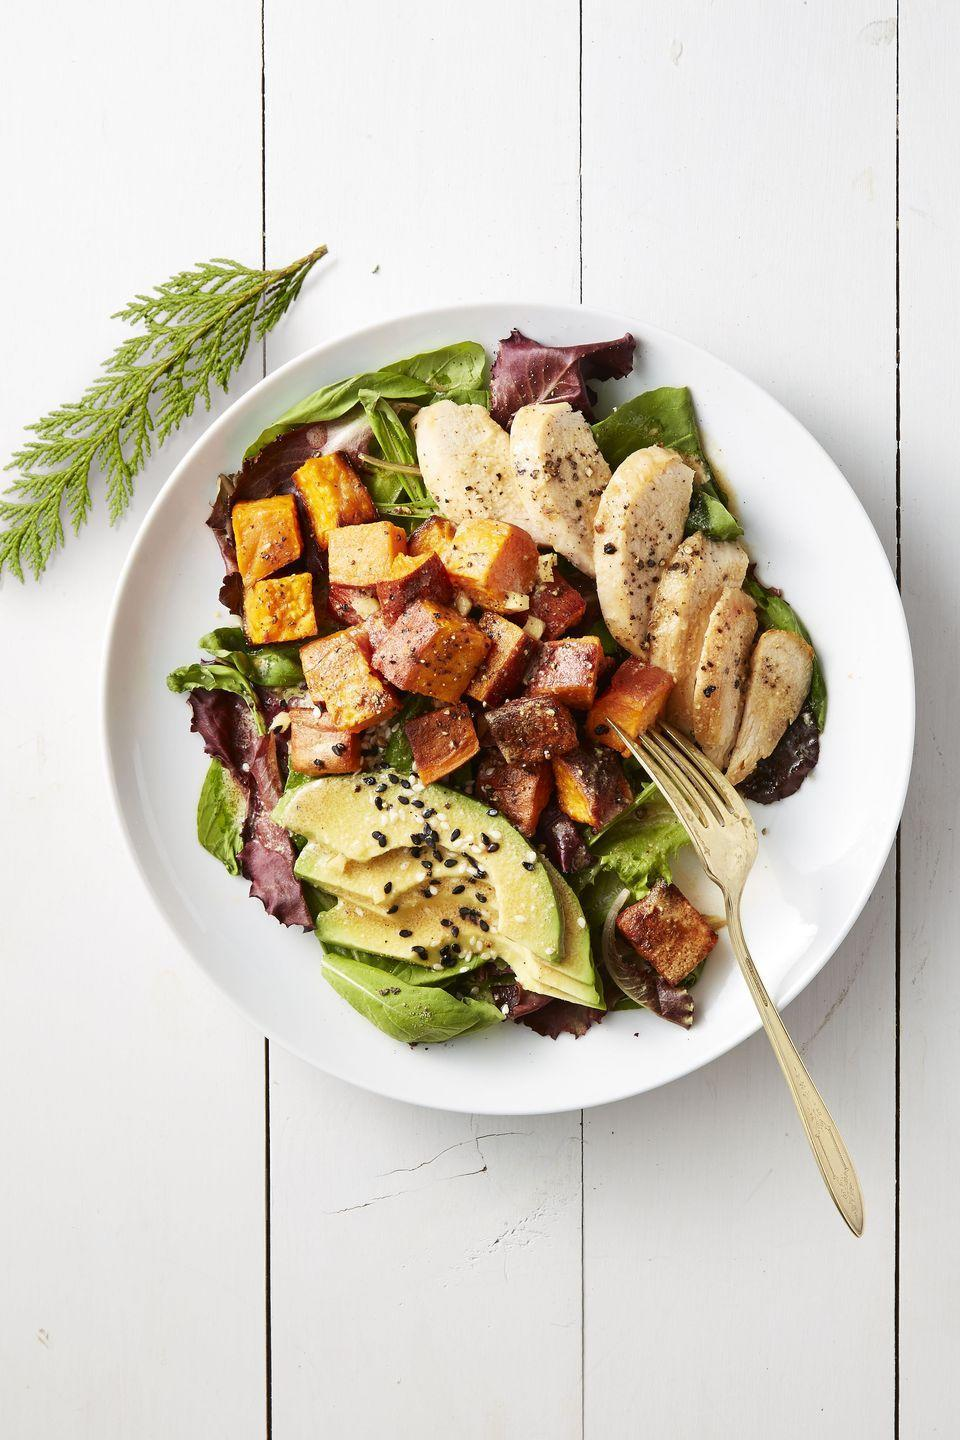 "<p>A hearty trifecta of <a href=""https://www.goodhousekeeping.com/food-recipes/g657/sweet-potato-recipes/"" rel=""nofollow noopener"" target=""_blank"" data-ylk=""slk:sweet potatoes"" class=""link rapid-noclick-resp"">sweet potatoes</a>, chicken, and avocado mean this salad recipe will actually fill you up. It's the umami-flavored miso vinaigrette that will inspire you to make it again and again. </p><p><em><a href=""https://www.goodhousekeeping.com/food-recipes/easy/a42180/roasted-sweet-potato-and-chicken-salad-recipe/"" rel=""nofollow noopener"" target=""_blank"" data-ylk=""slk:Get the recipe for Roasted Sweet Potato and Chicken Salad »"" class=""link rapid-noclick-resp"">Get the recipe for Roasted Sweet Potato and Chicken Salad »</a></em></p>"